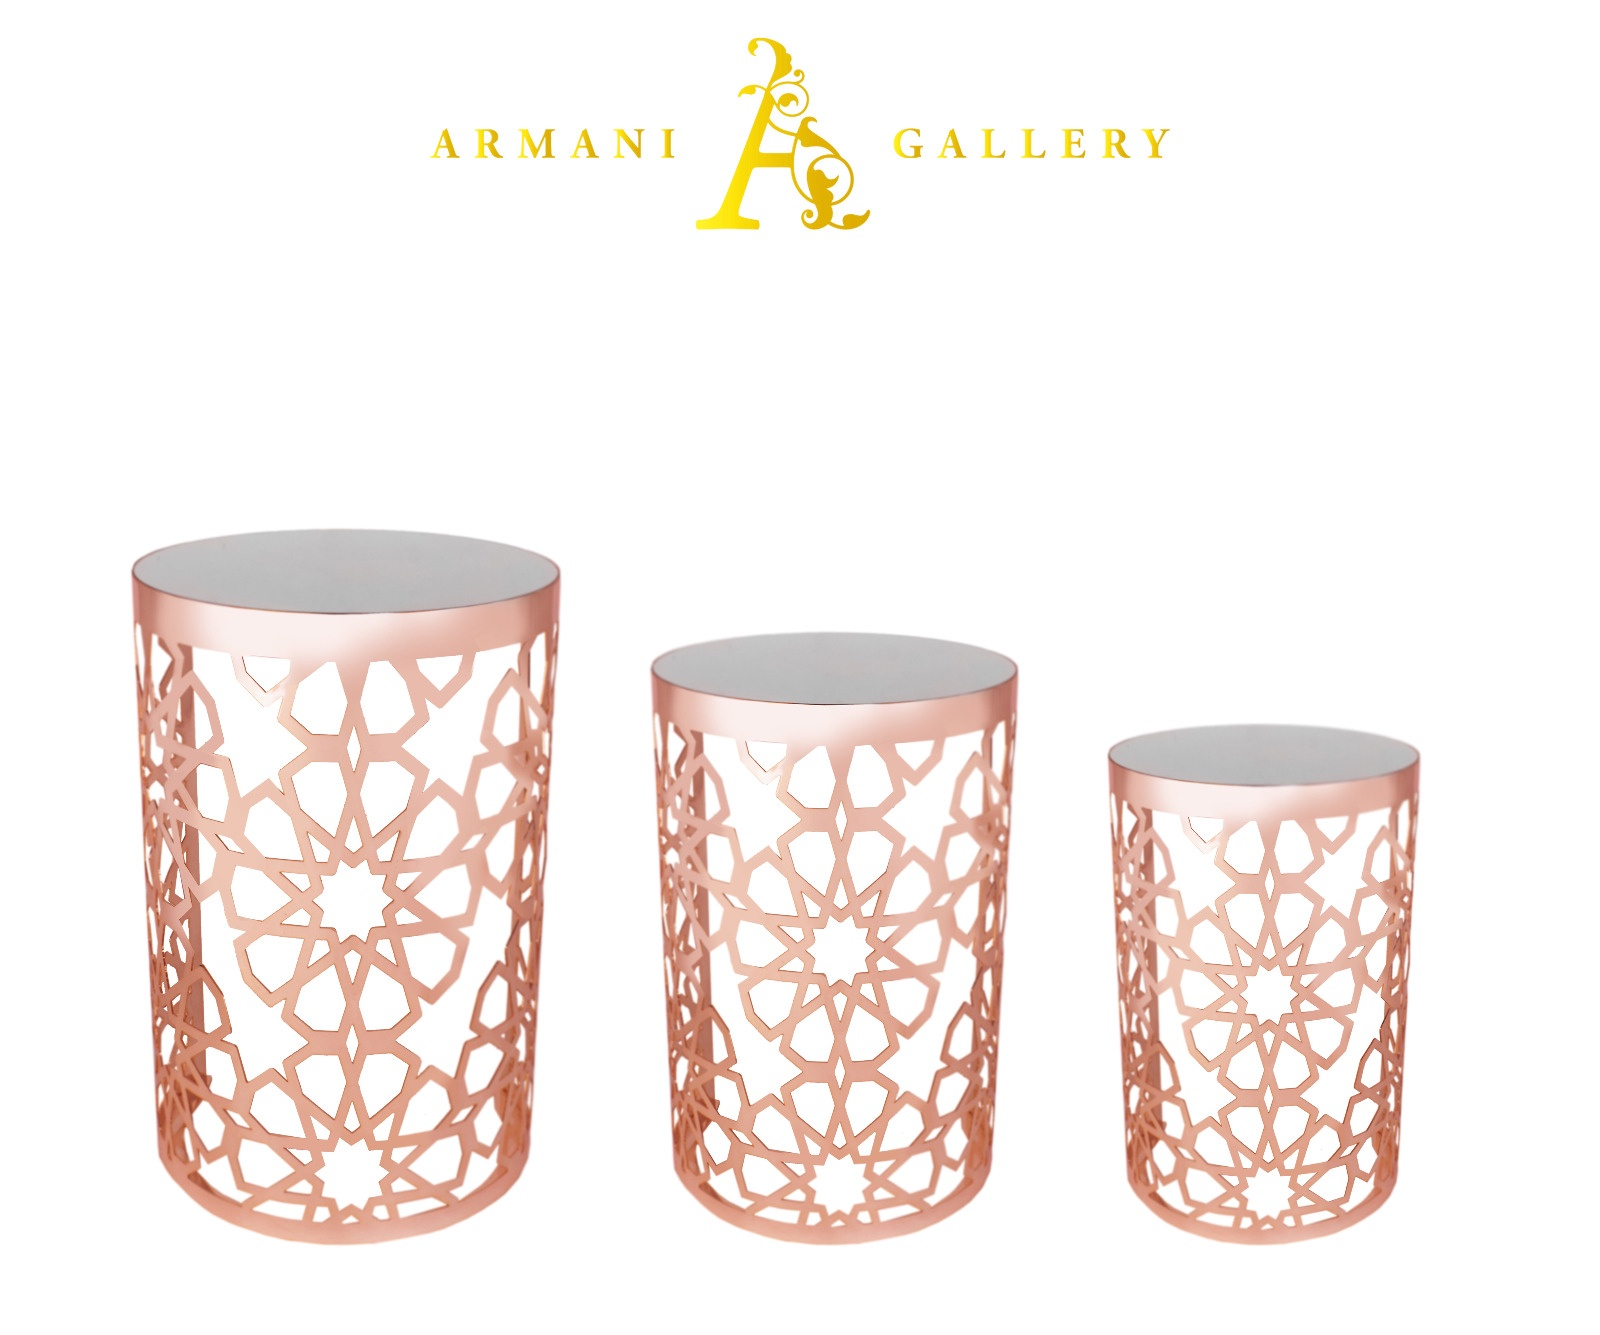 Buy Rose Gold Mirrored Nest of Tables - Style 1